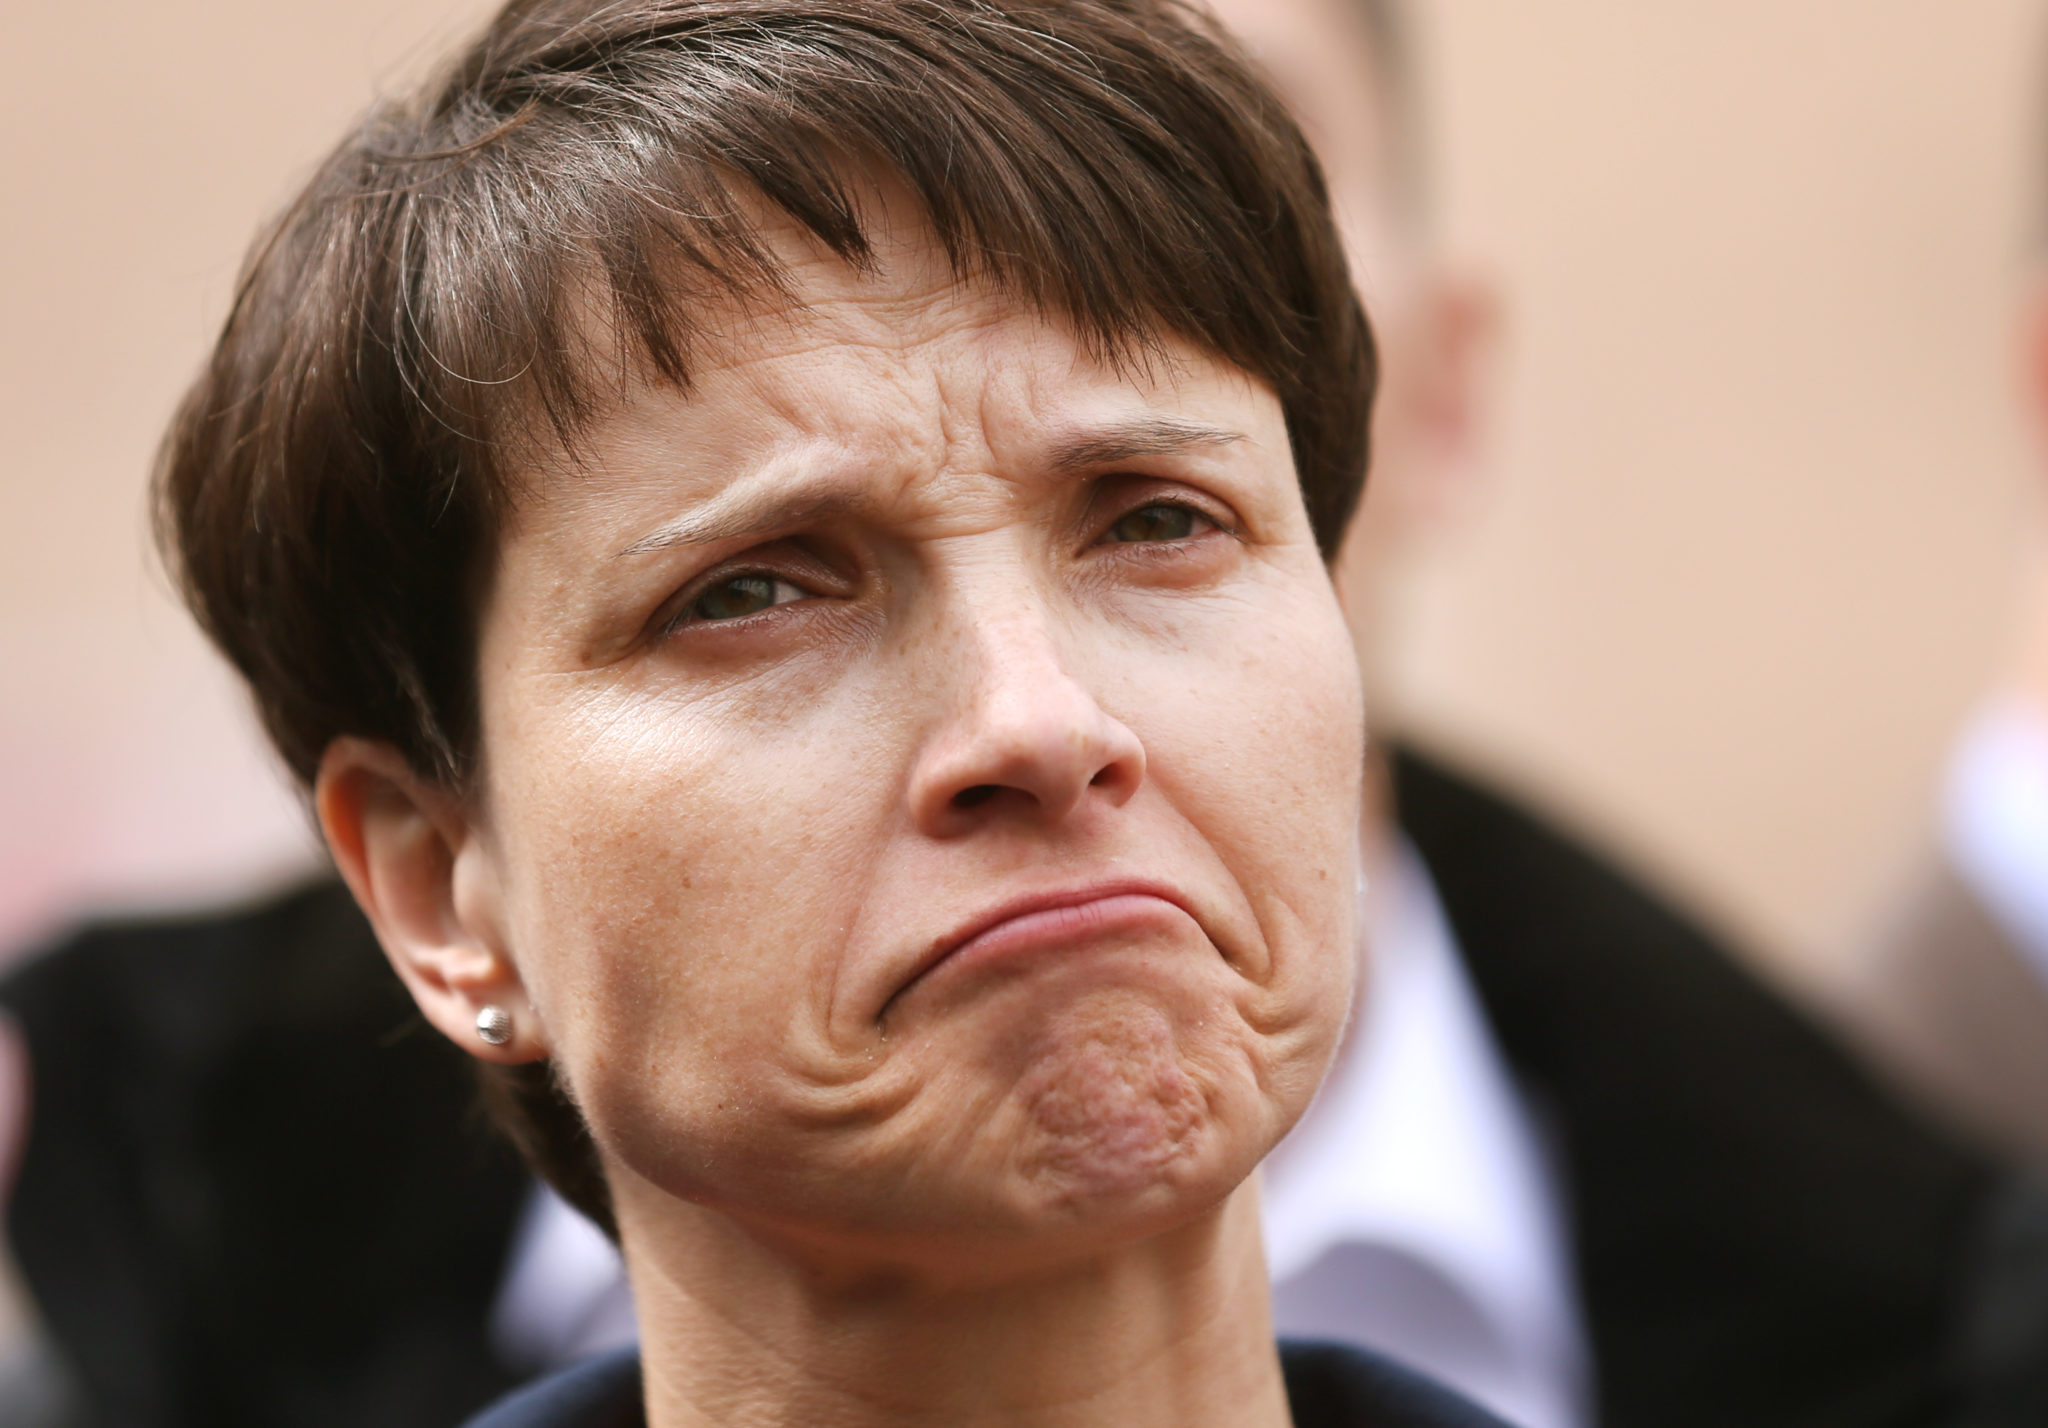 AfD co-spokeswoman Frauke Petry pictured at the European